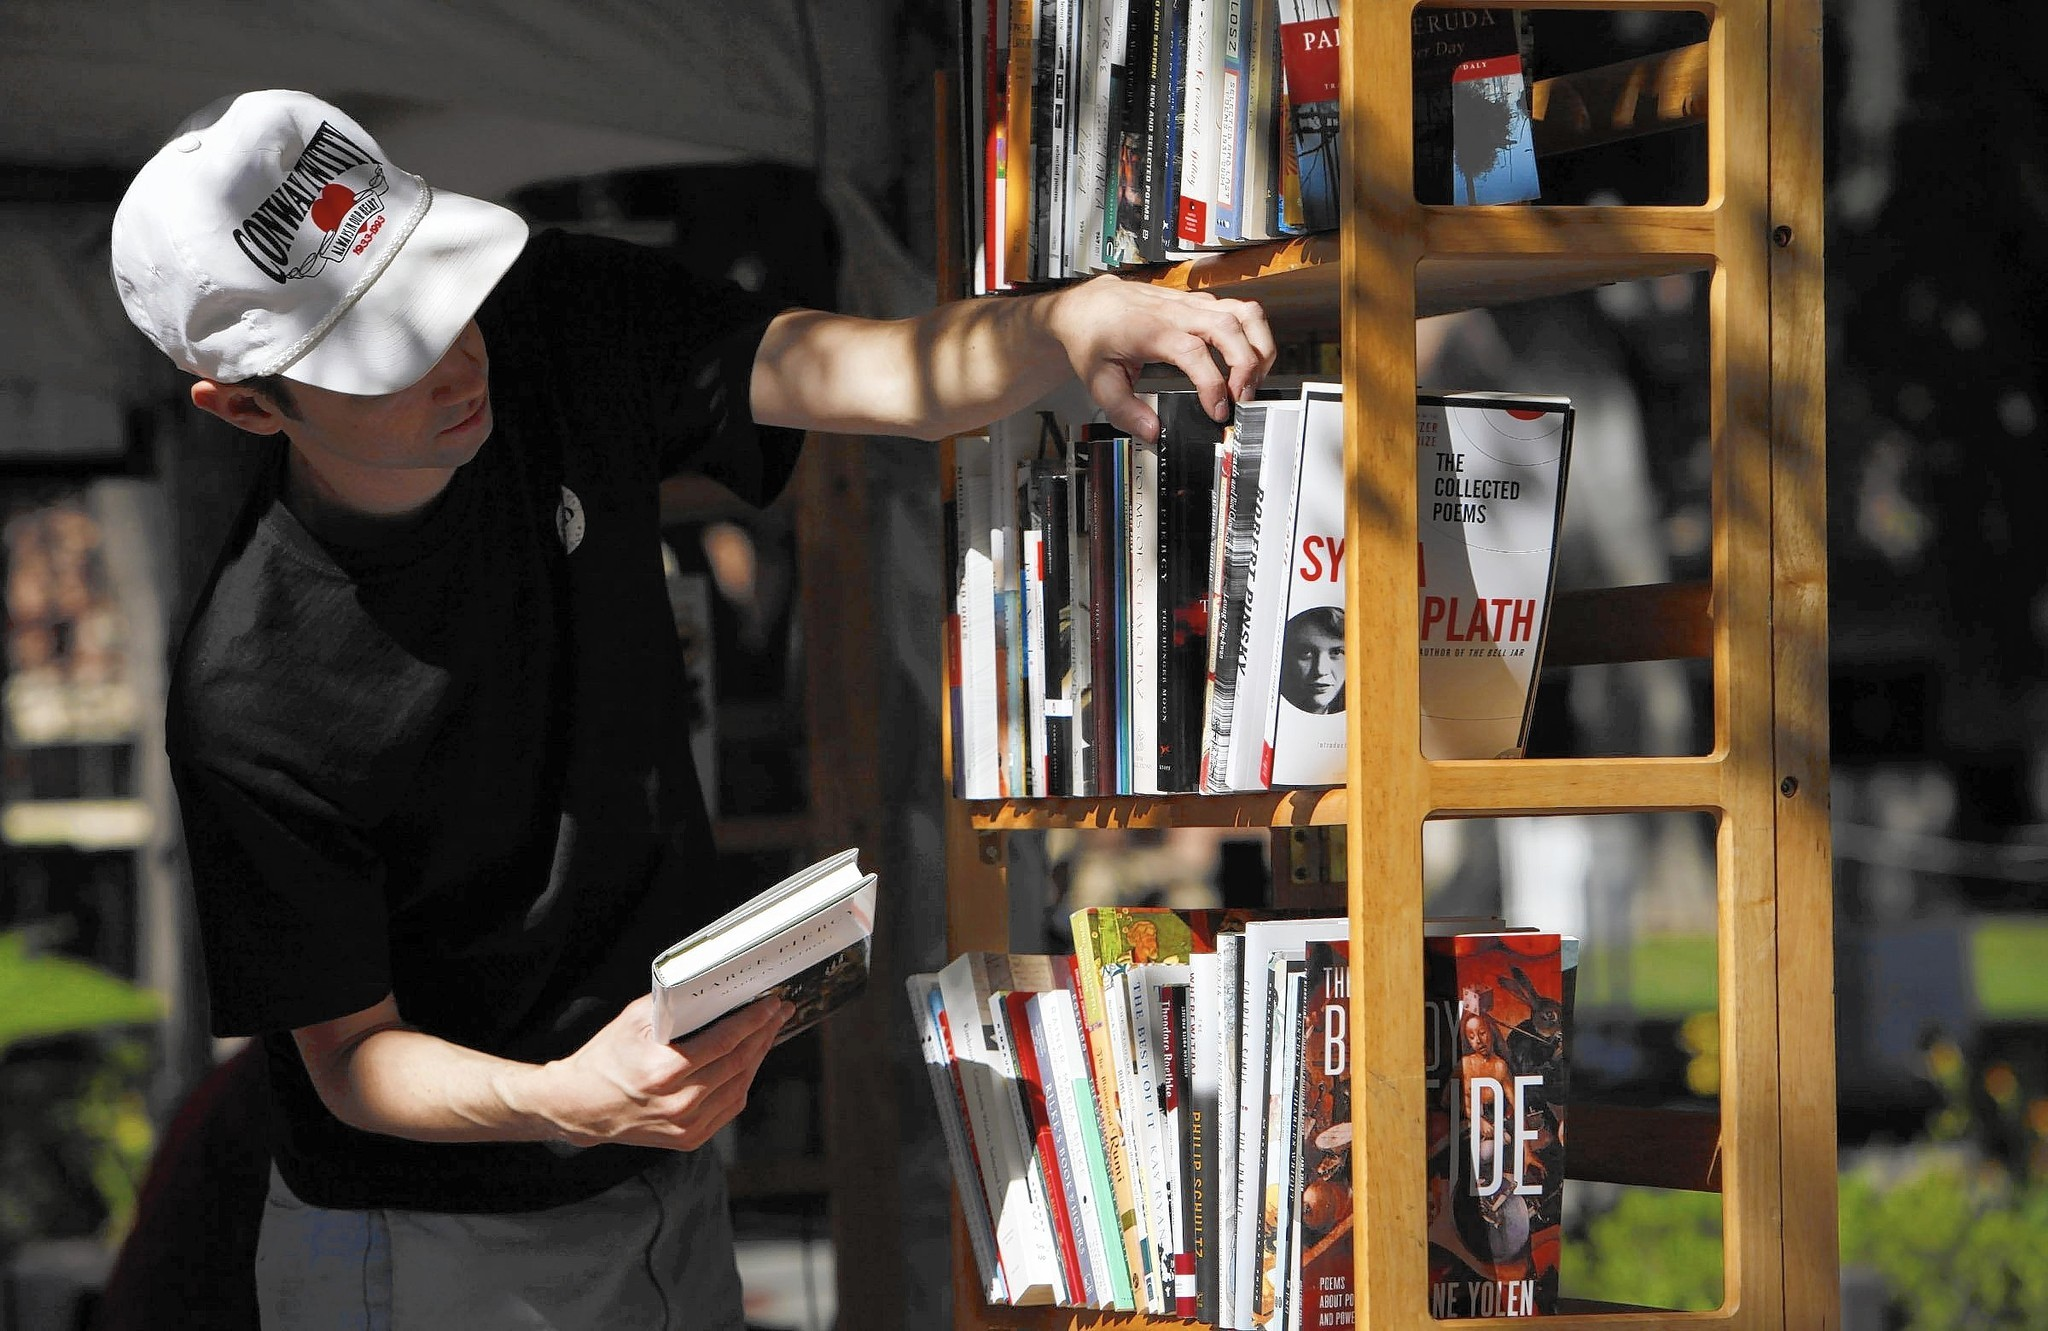 A literary exploration at Los Angeles Times Festival of Books